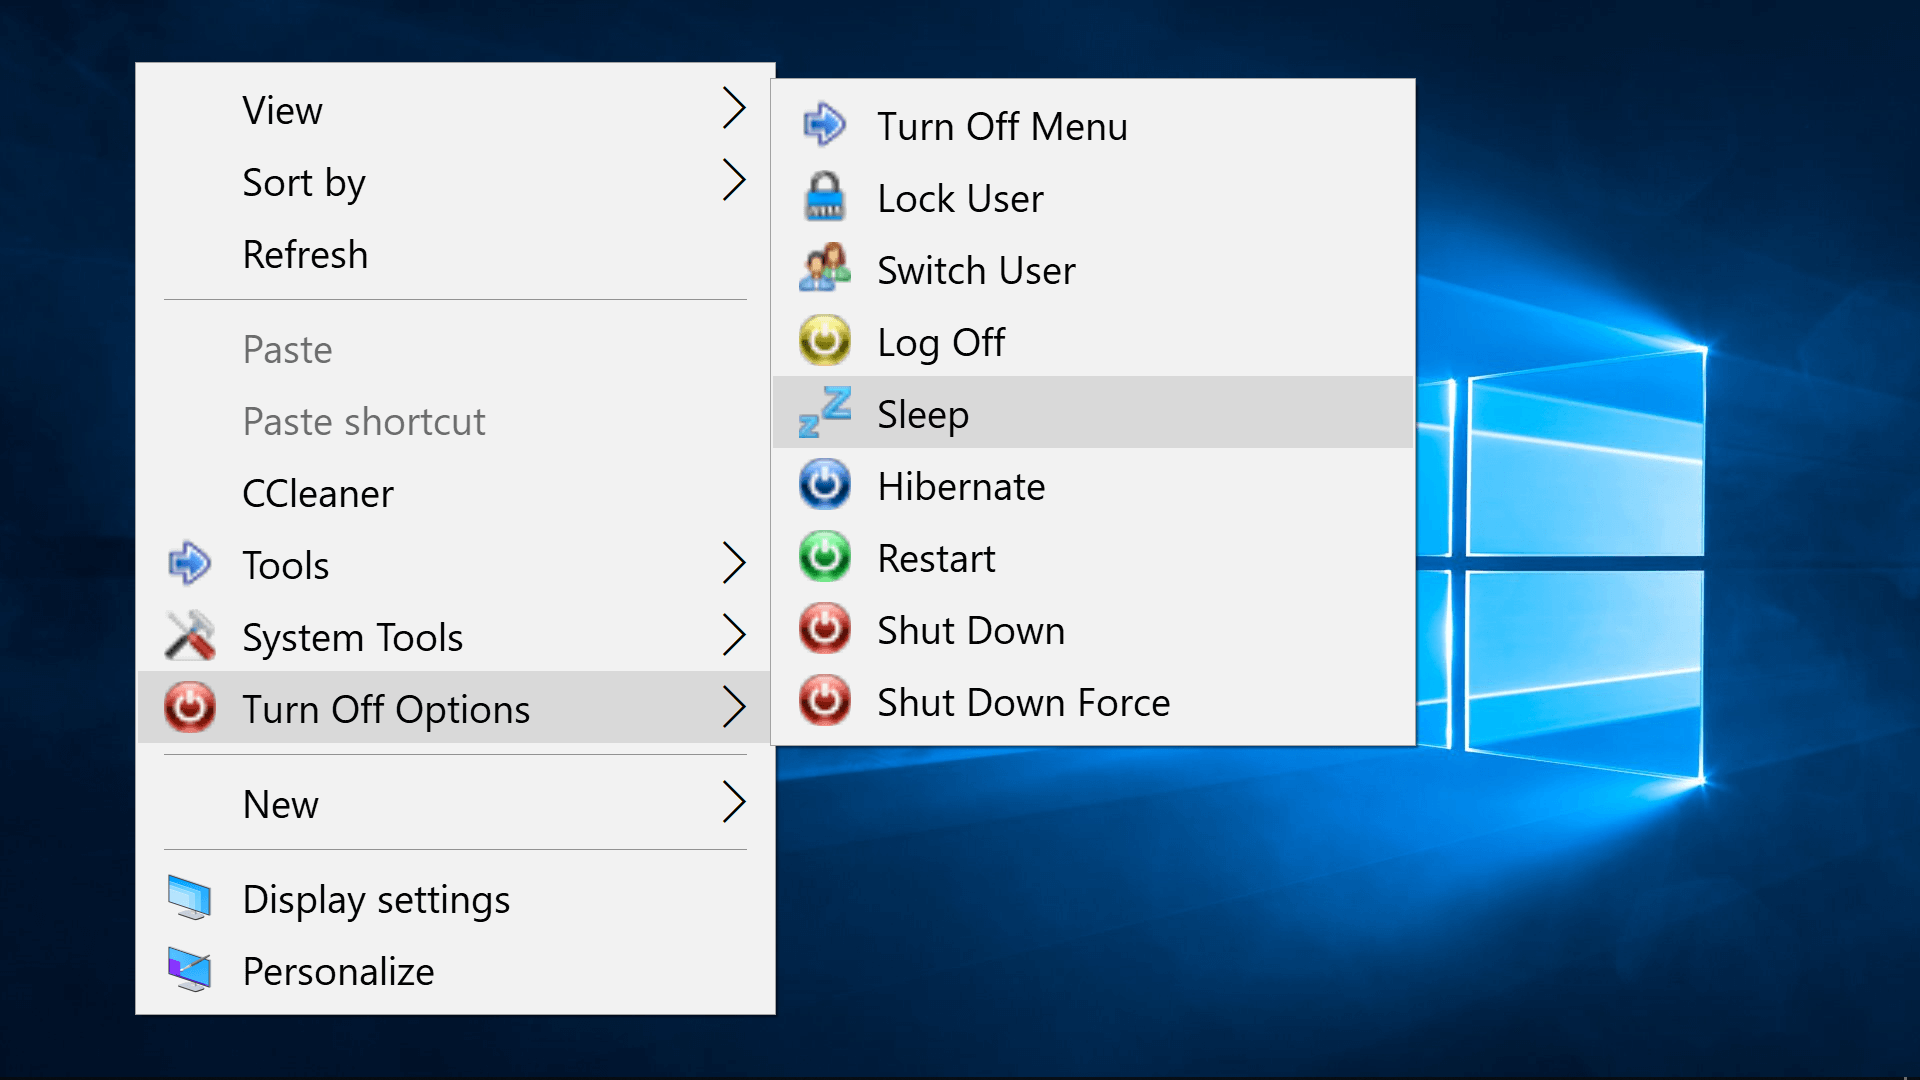 Customizing Windows 10's Context Menu: Add, Remove Items